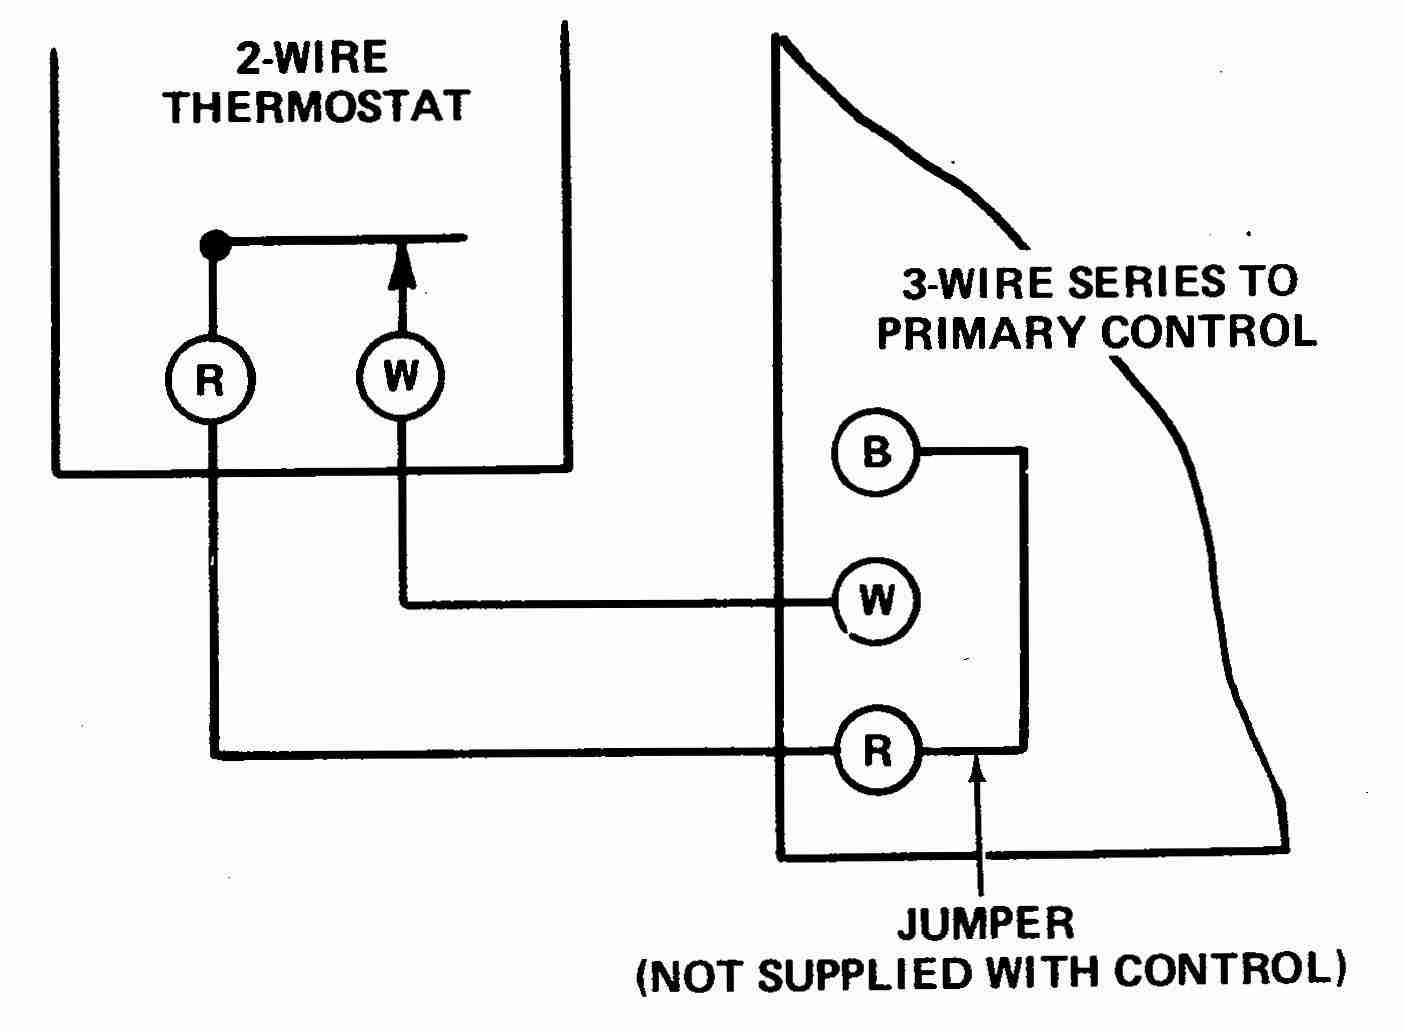 hight resolution of room thermostat wiring diagrams for hvac systems 24 volt thermostat wiring diagram 24 volt thermostat wiring